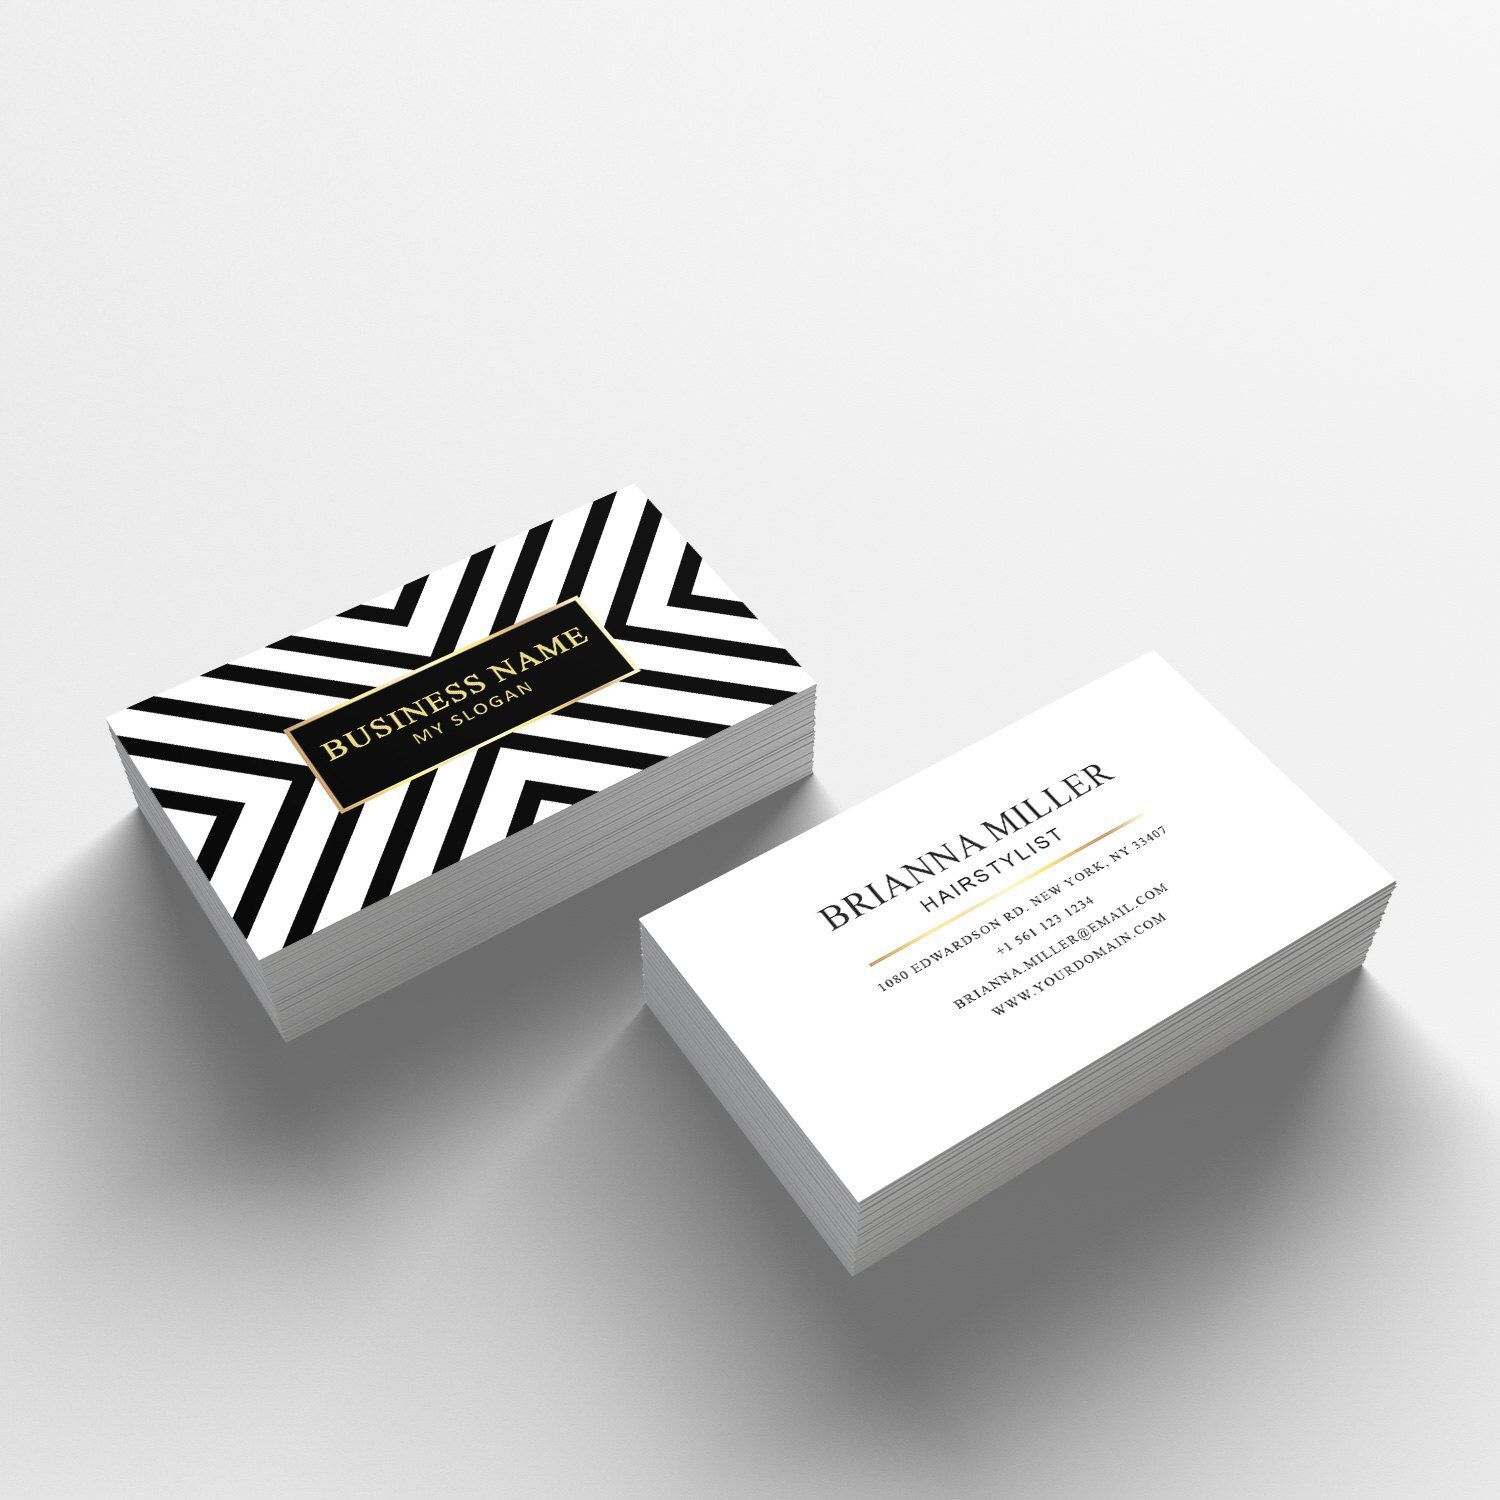 Business Card Template 04 2 Sided Business Card Design Appointment Card For Salon Free Business Card Templates Salon Business Cards Business Cards Creative